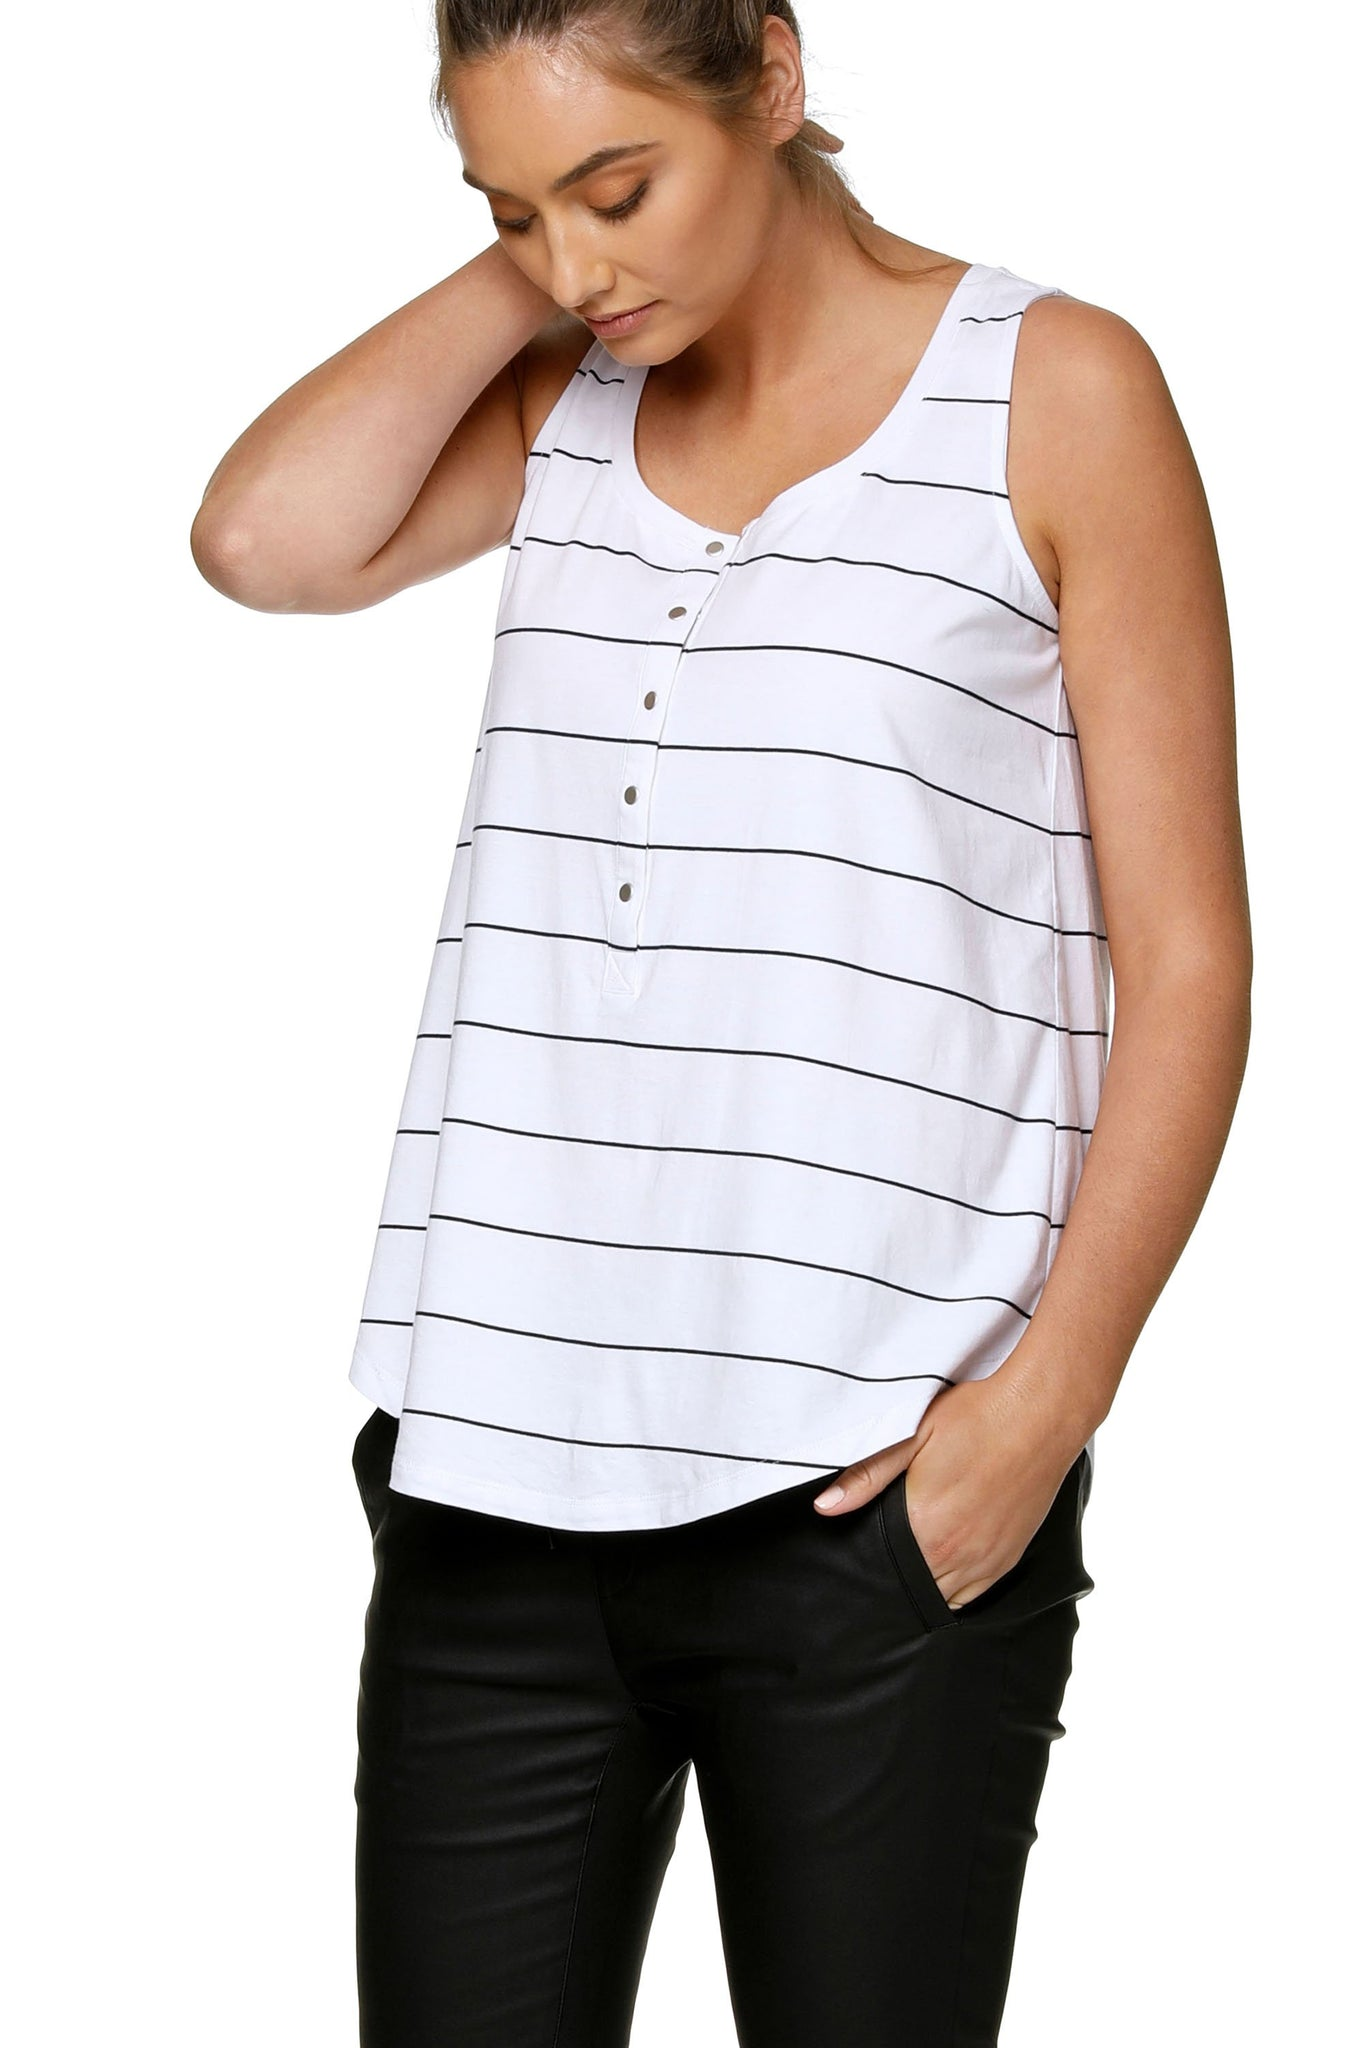 Maternity + Nursing Tank Top - White Stripe 6